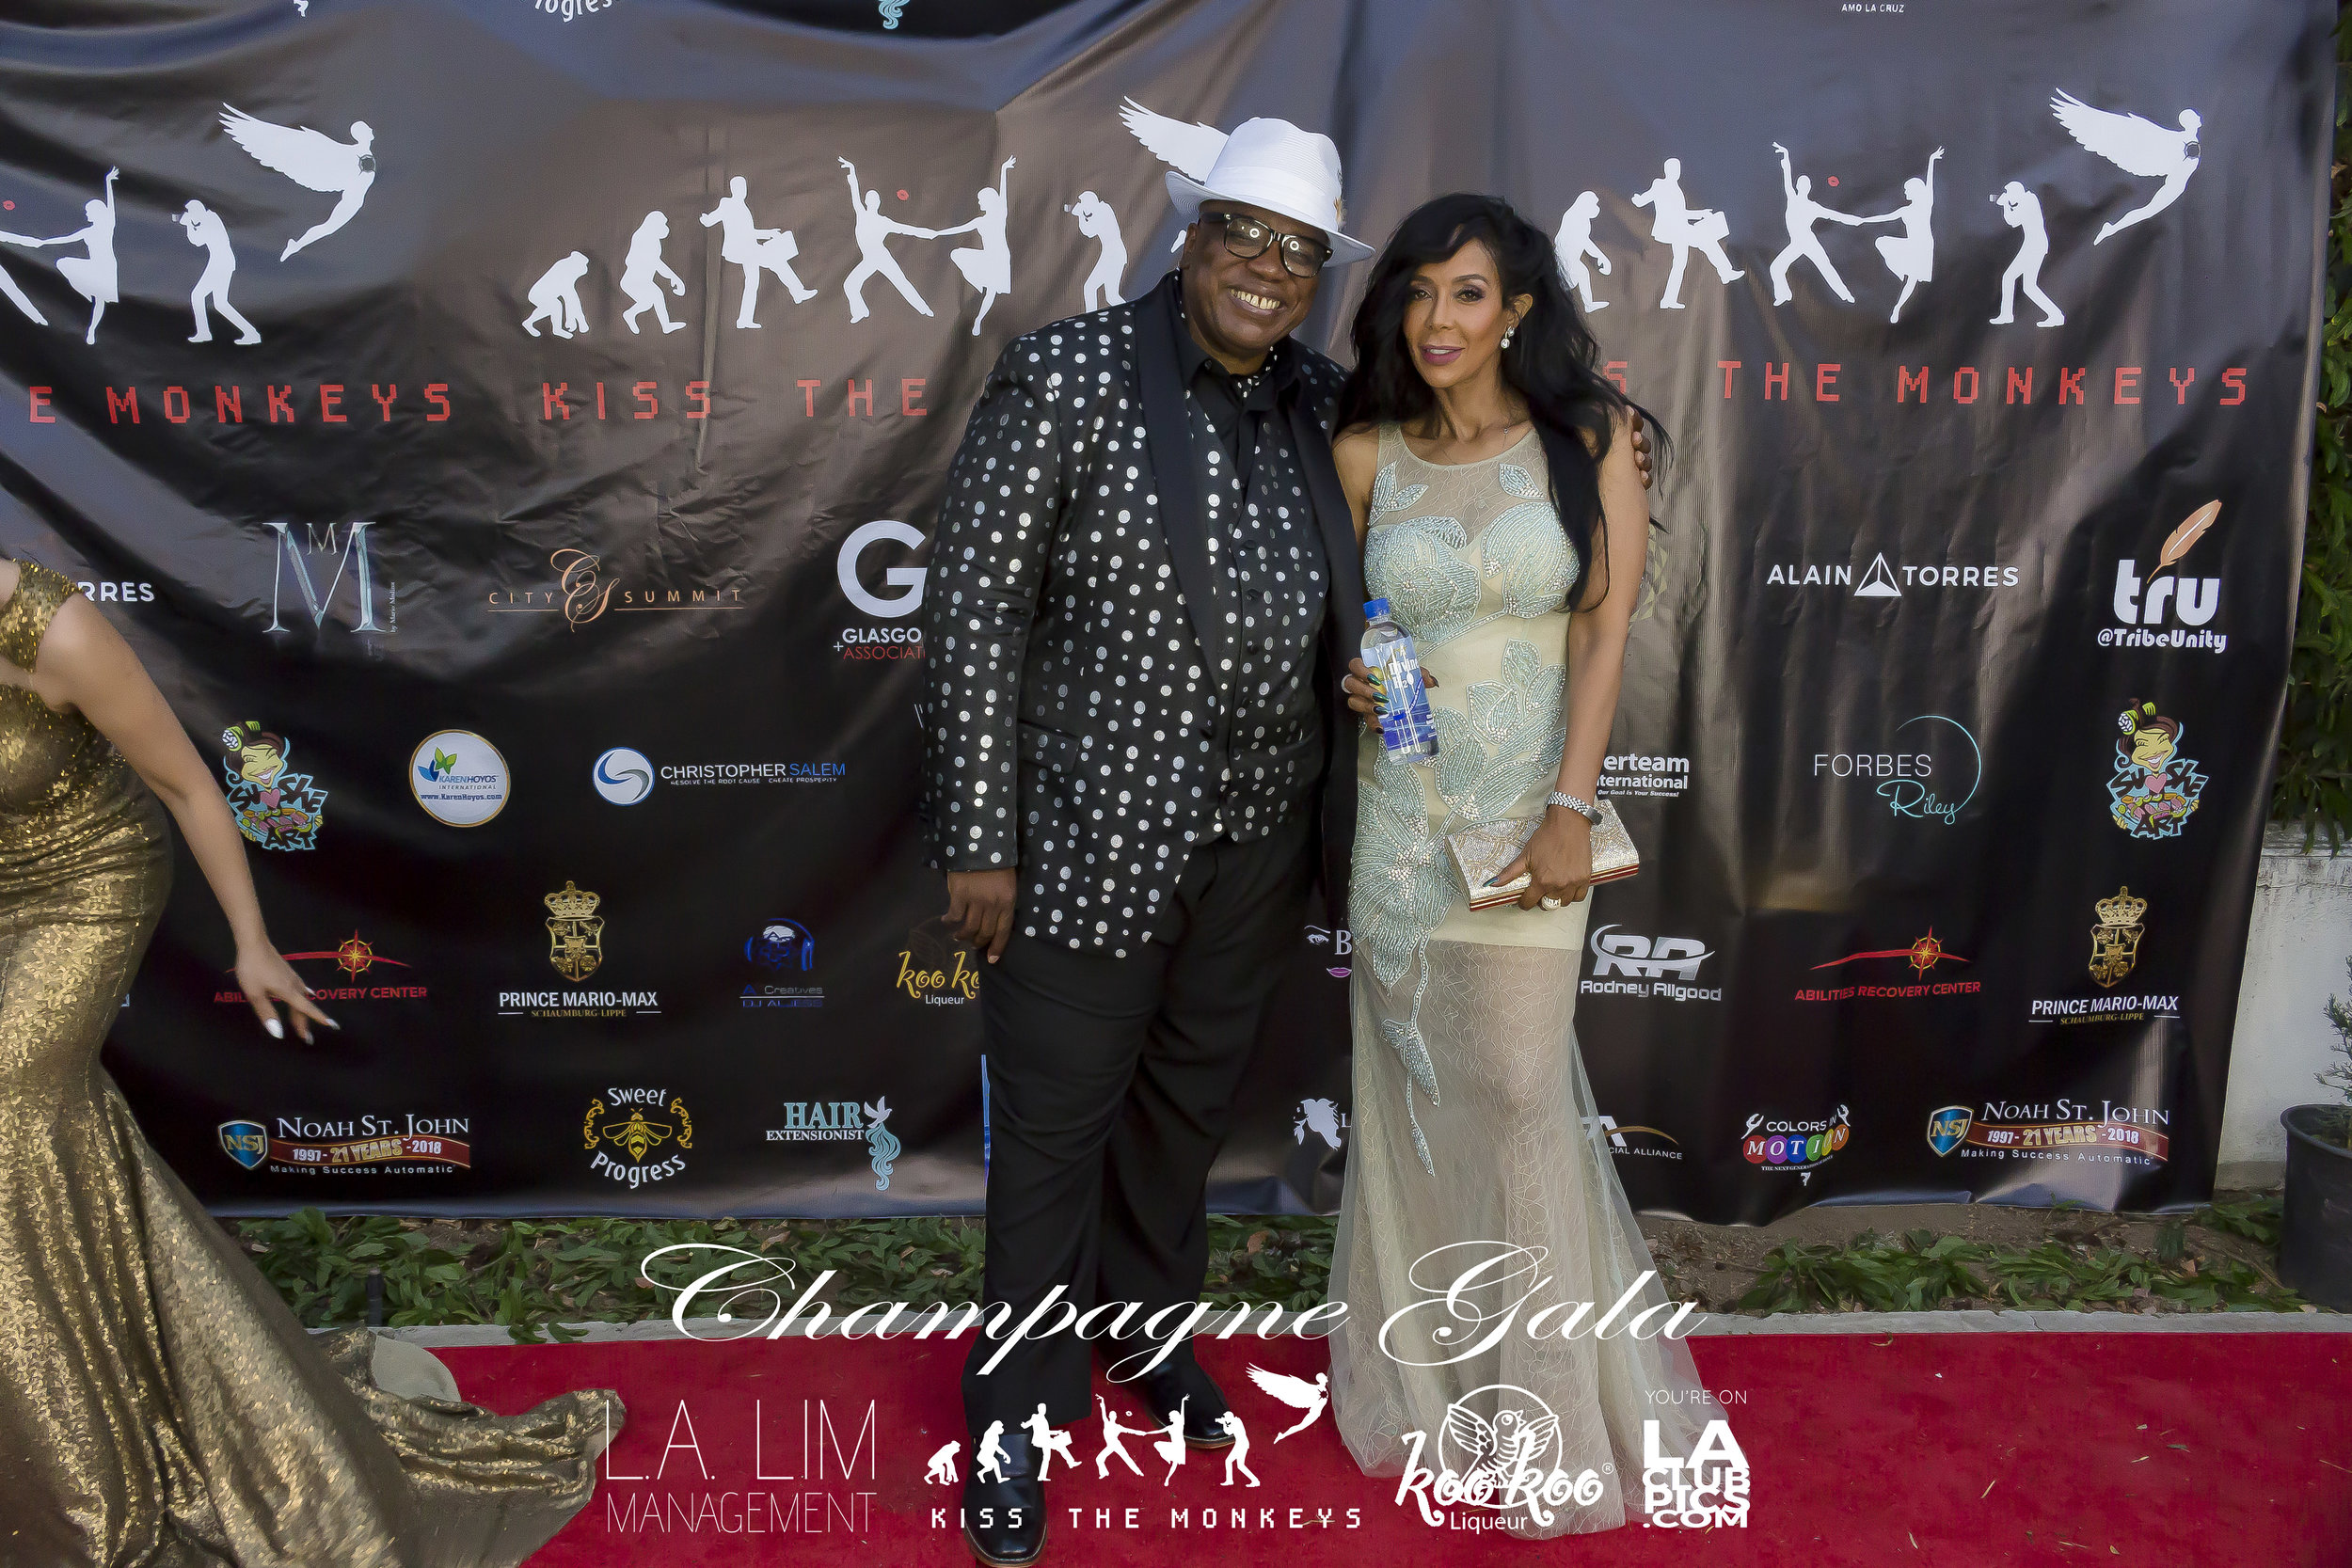 Kiss The Monkeys - Champagne Gala - 07-21-18_146.jpg